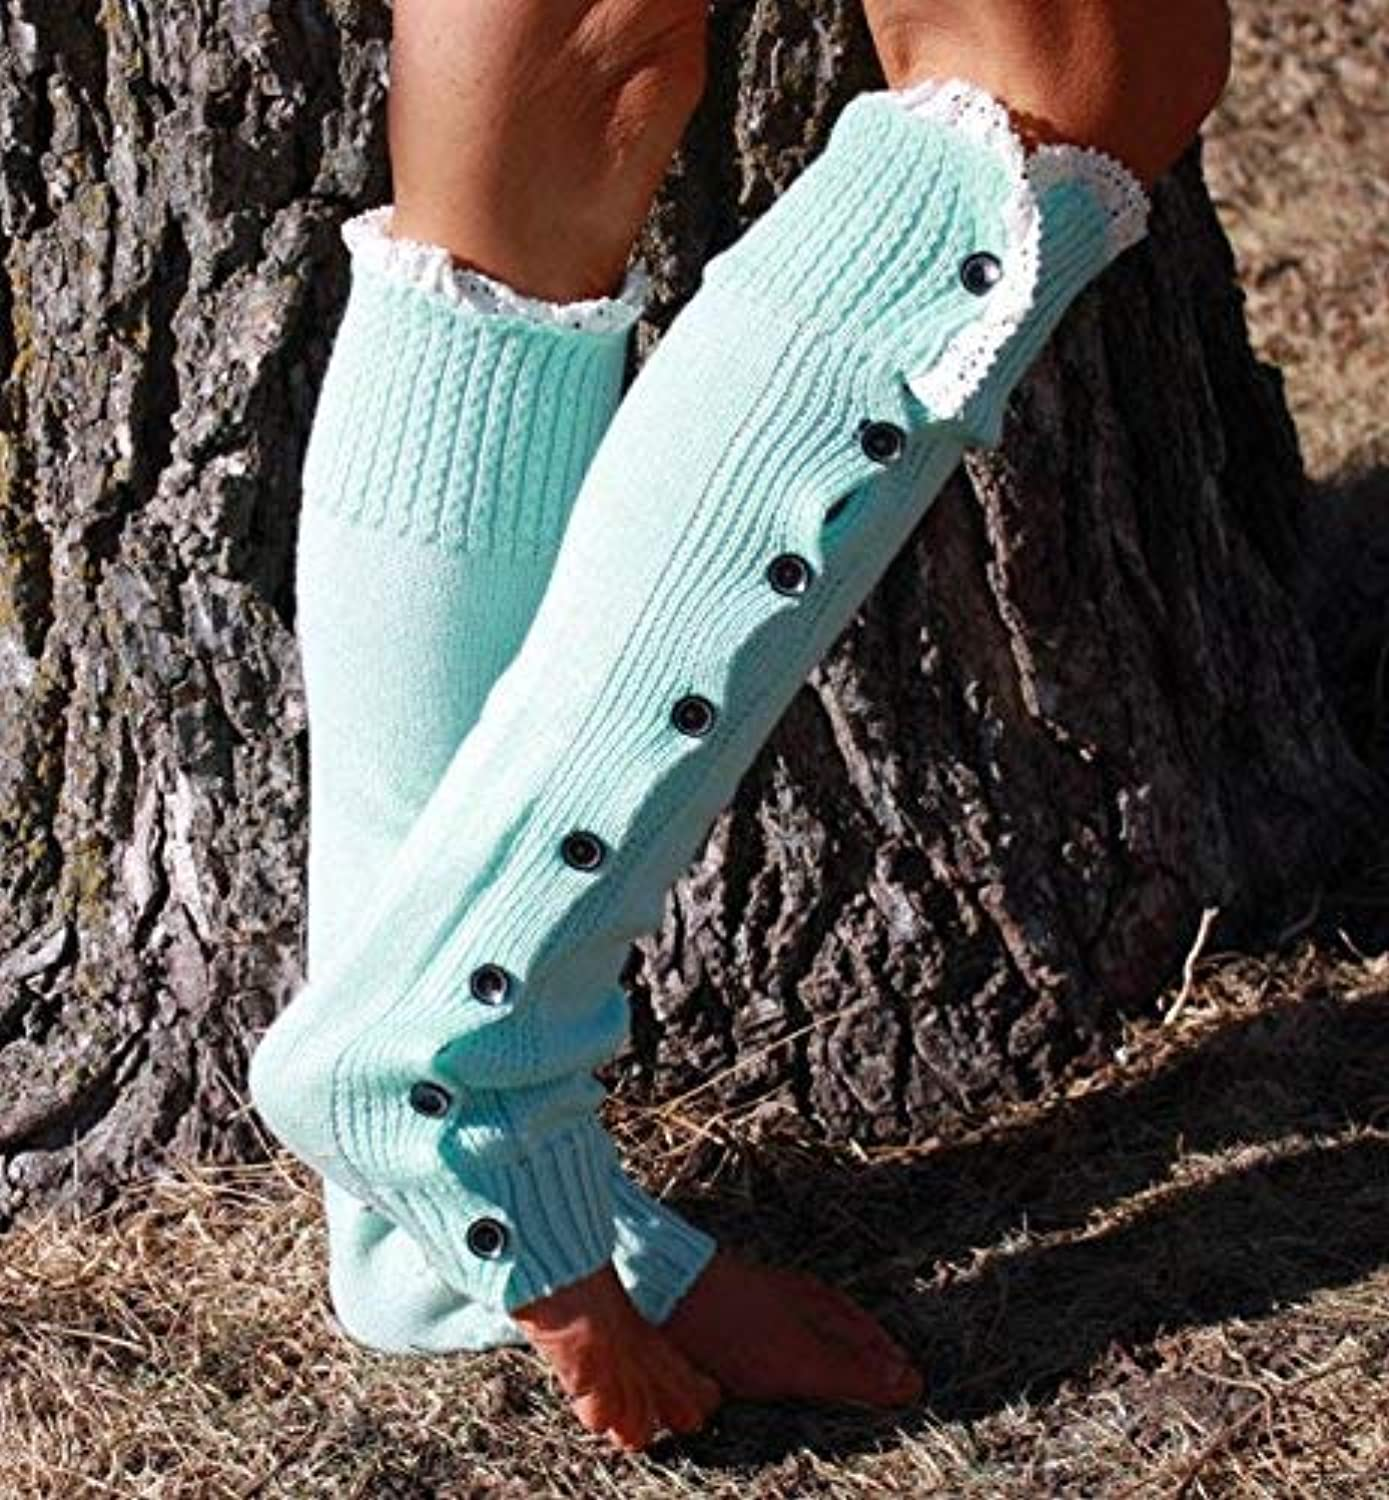 Christmas Button lace lace Over The Knee Boots Set Wool Knit Foot Cover Socks Set 7 colors (color   Light Green)